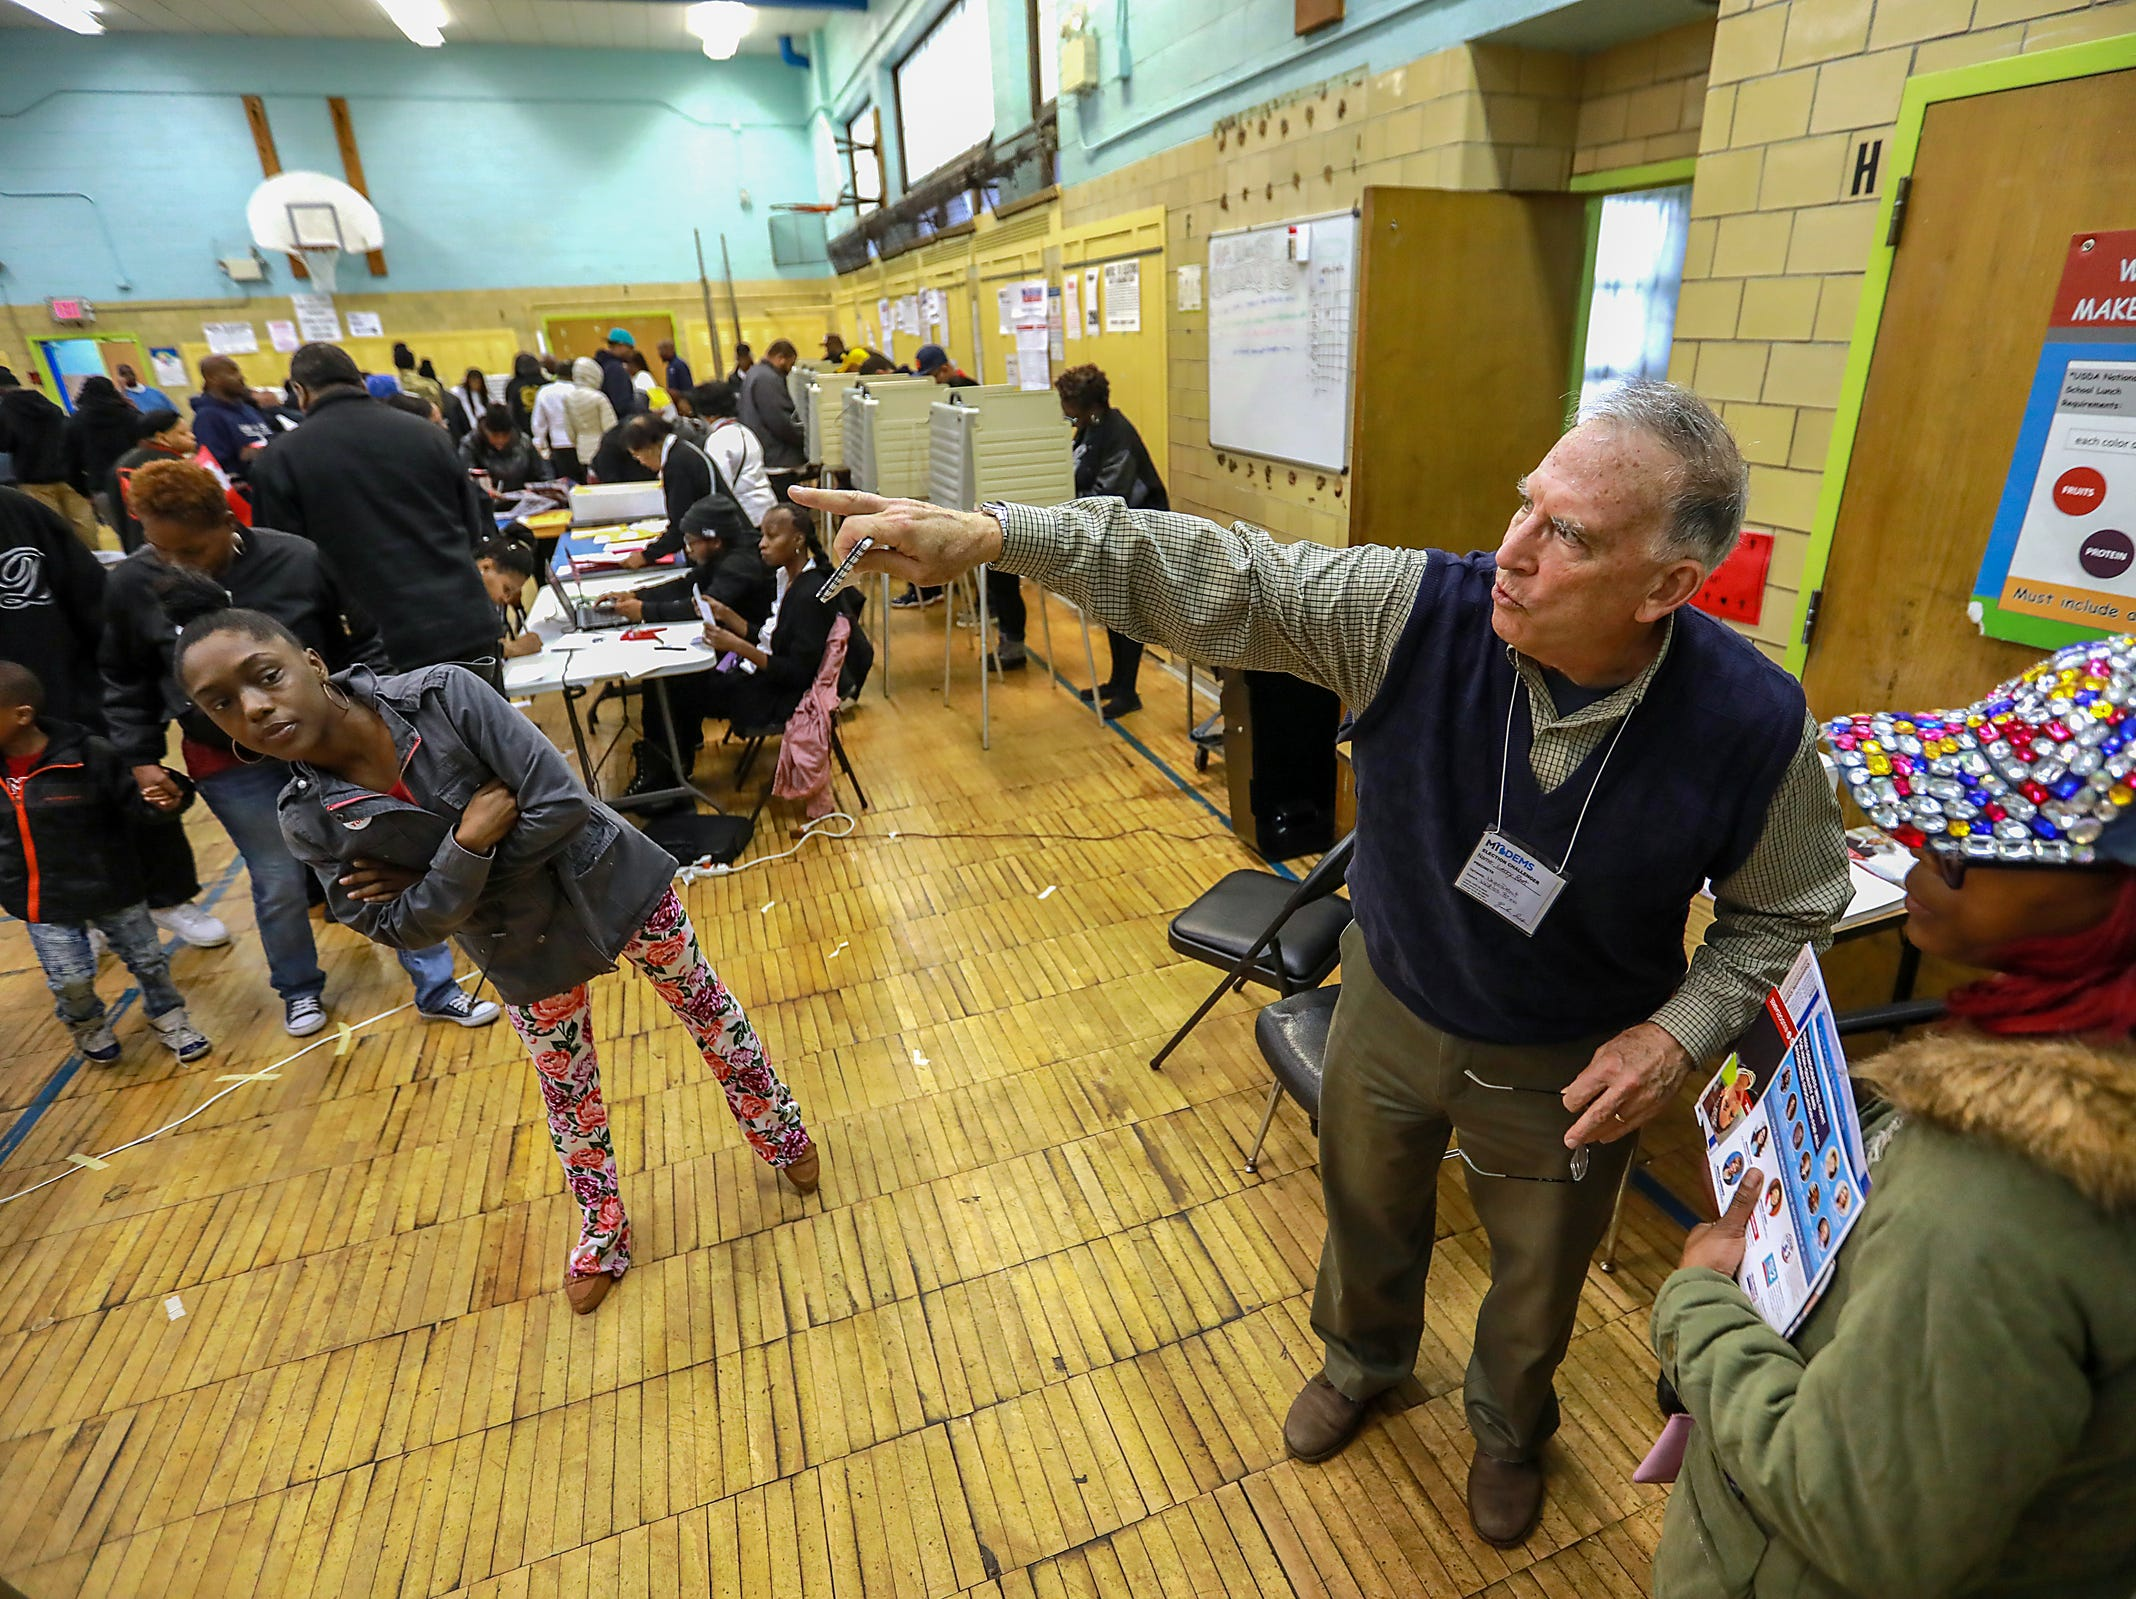 Larry Root, 72, of Ann Arbor is a democratic poll watcher and directs Voters to their precincts to vote at Bow elementary-middle school on Michigan midterm elections day in Detroit on Tuesday, Nov. 6, 2018.